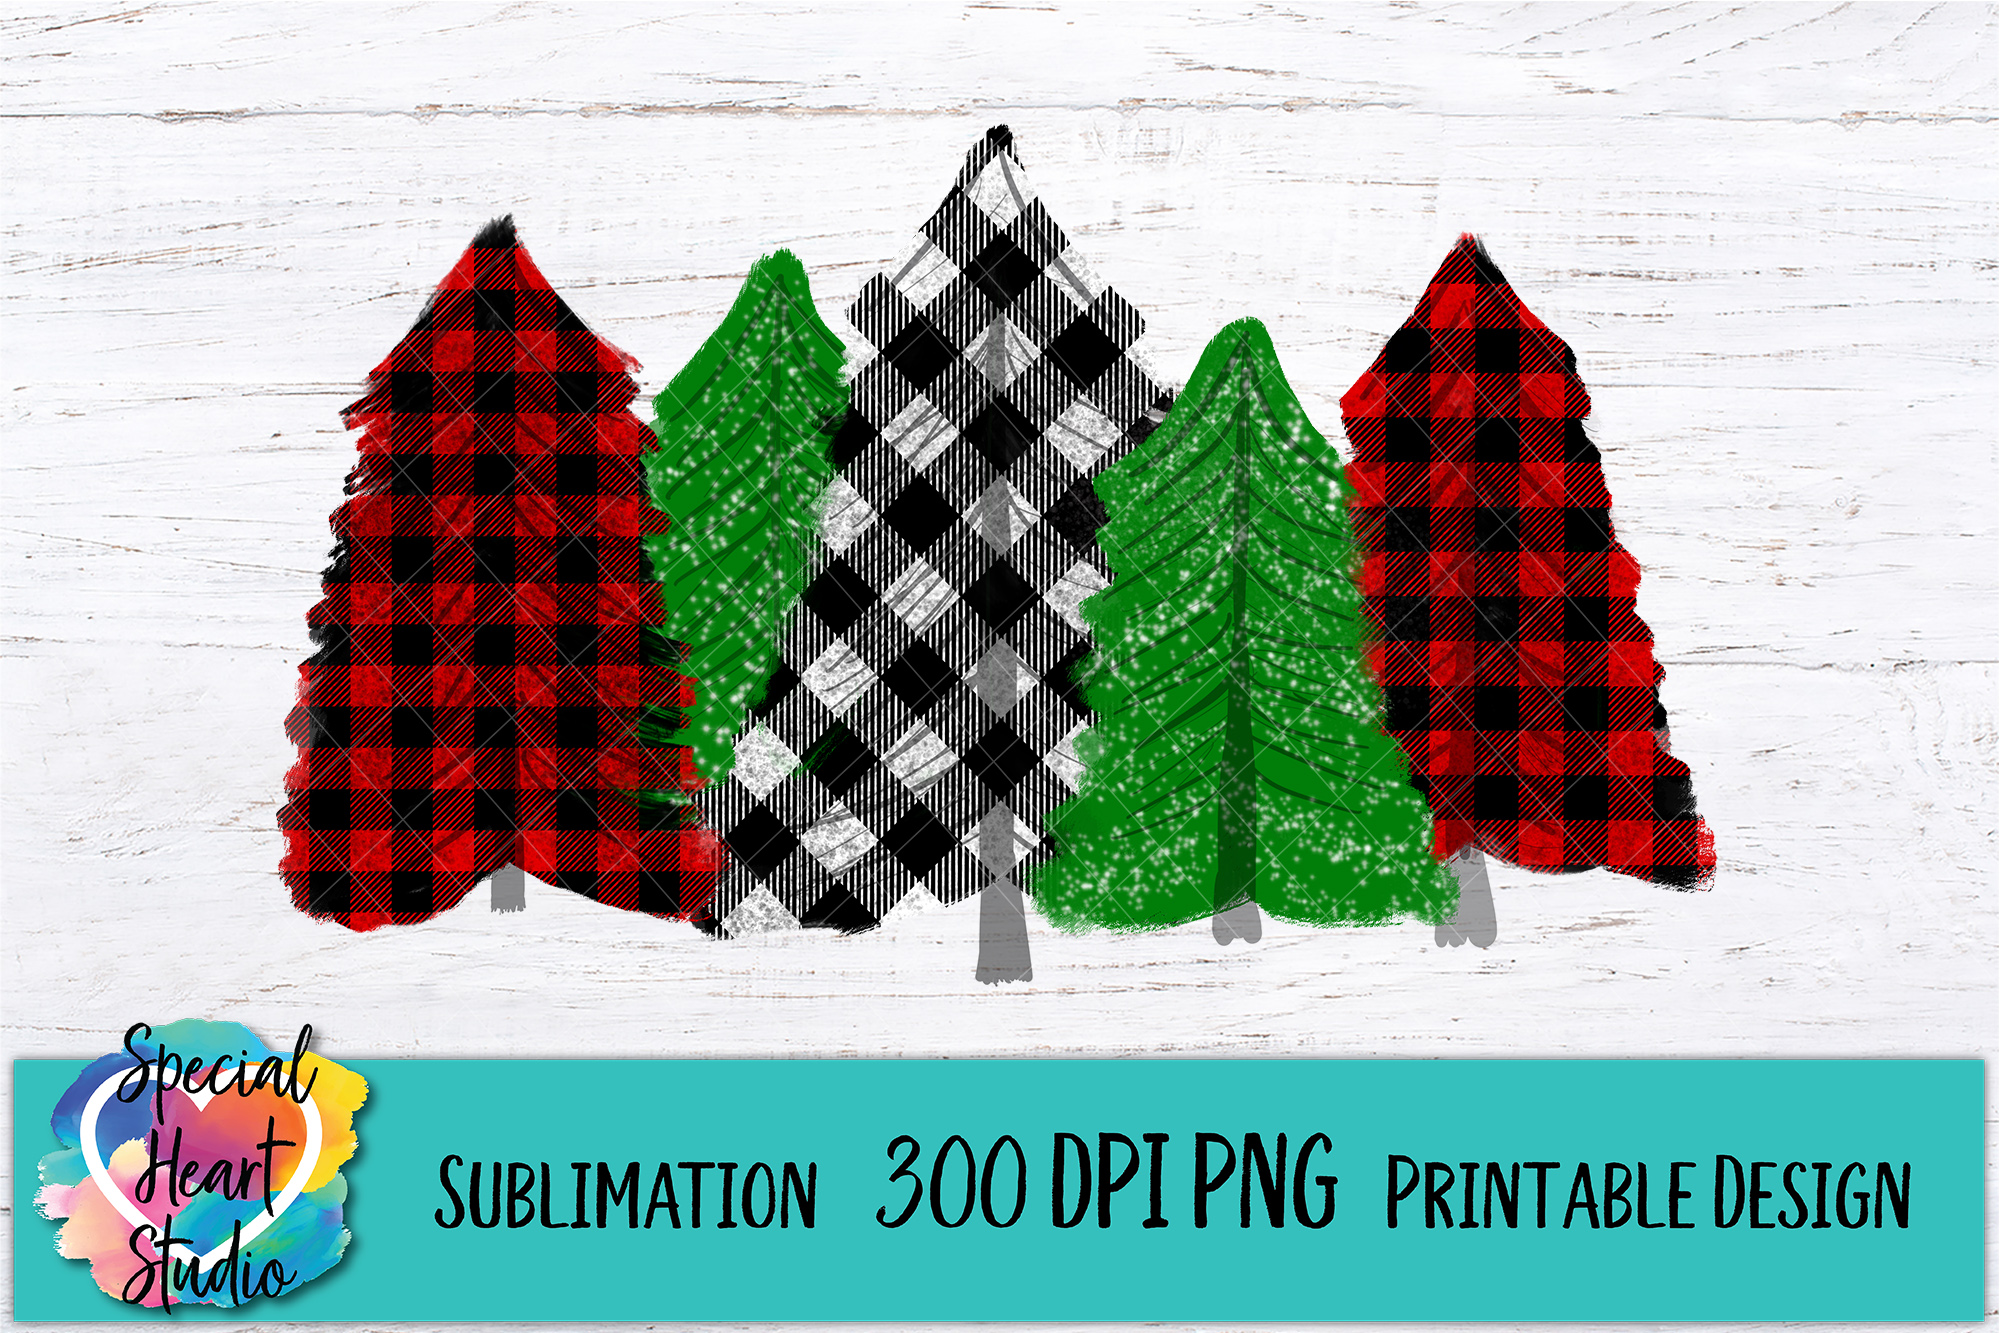 Buffalo Plaid Trees Printable Sublimation Png From Special Heart Studio